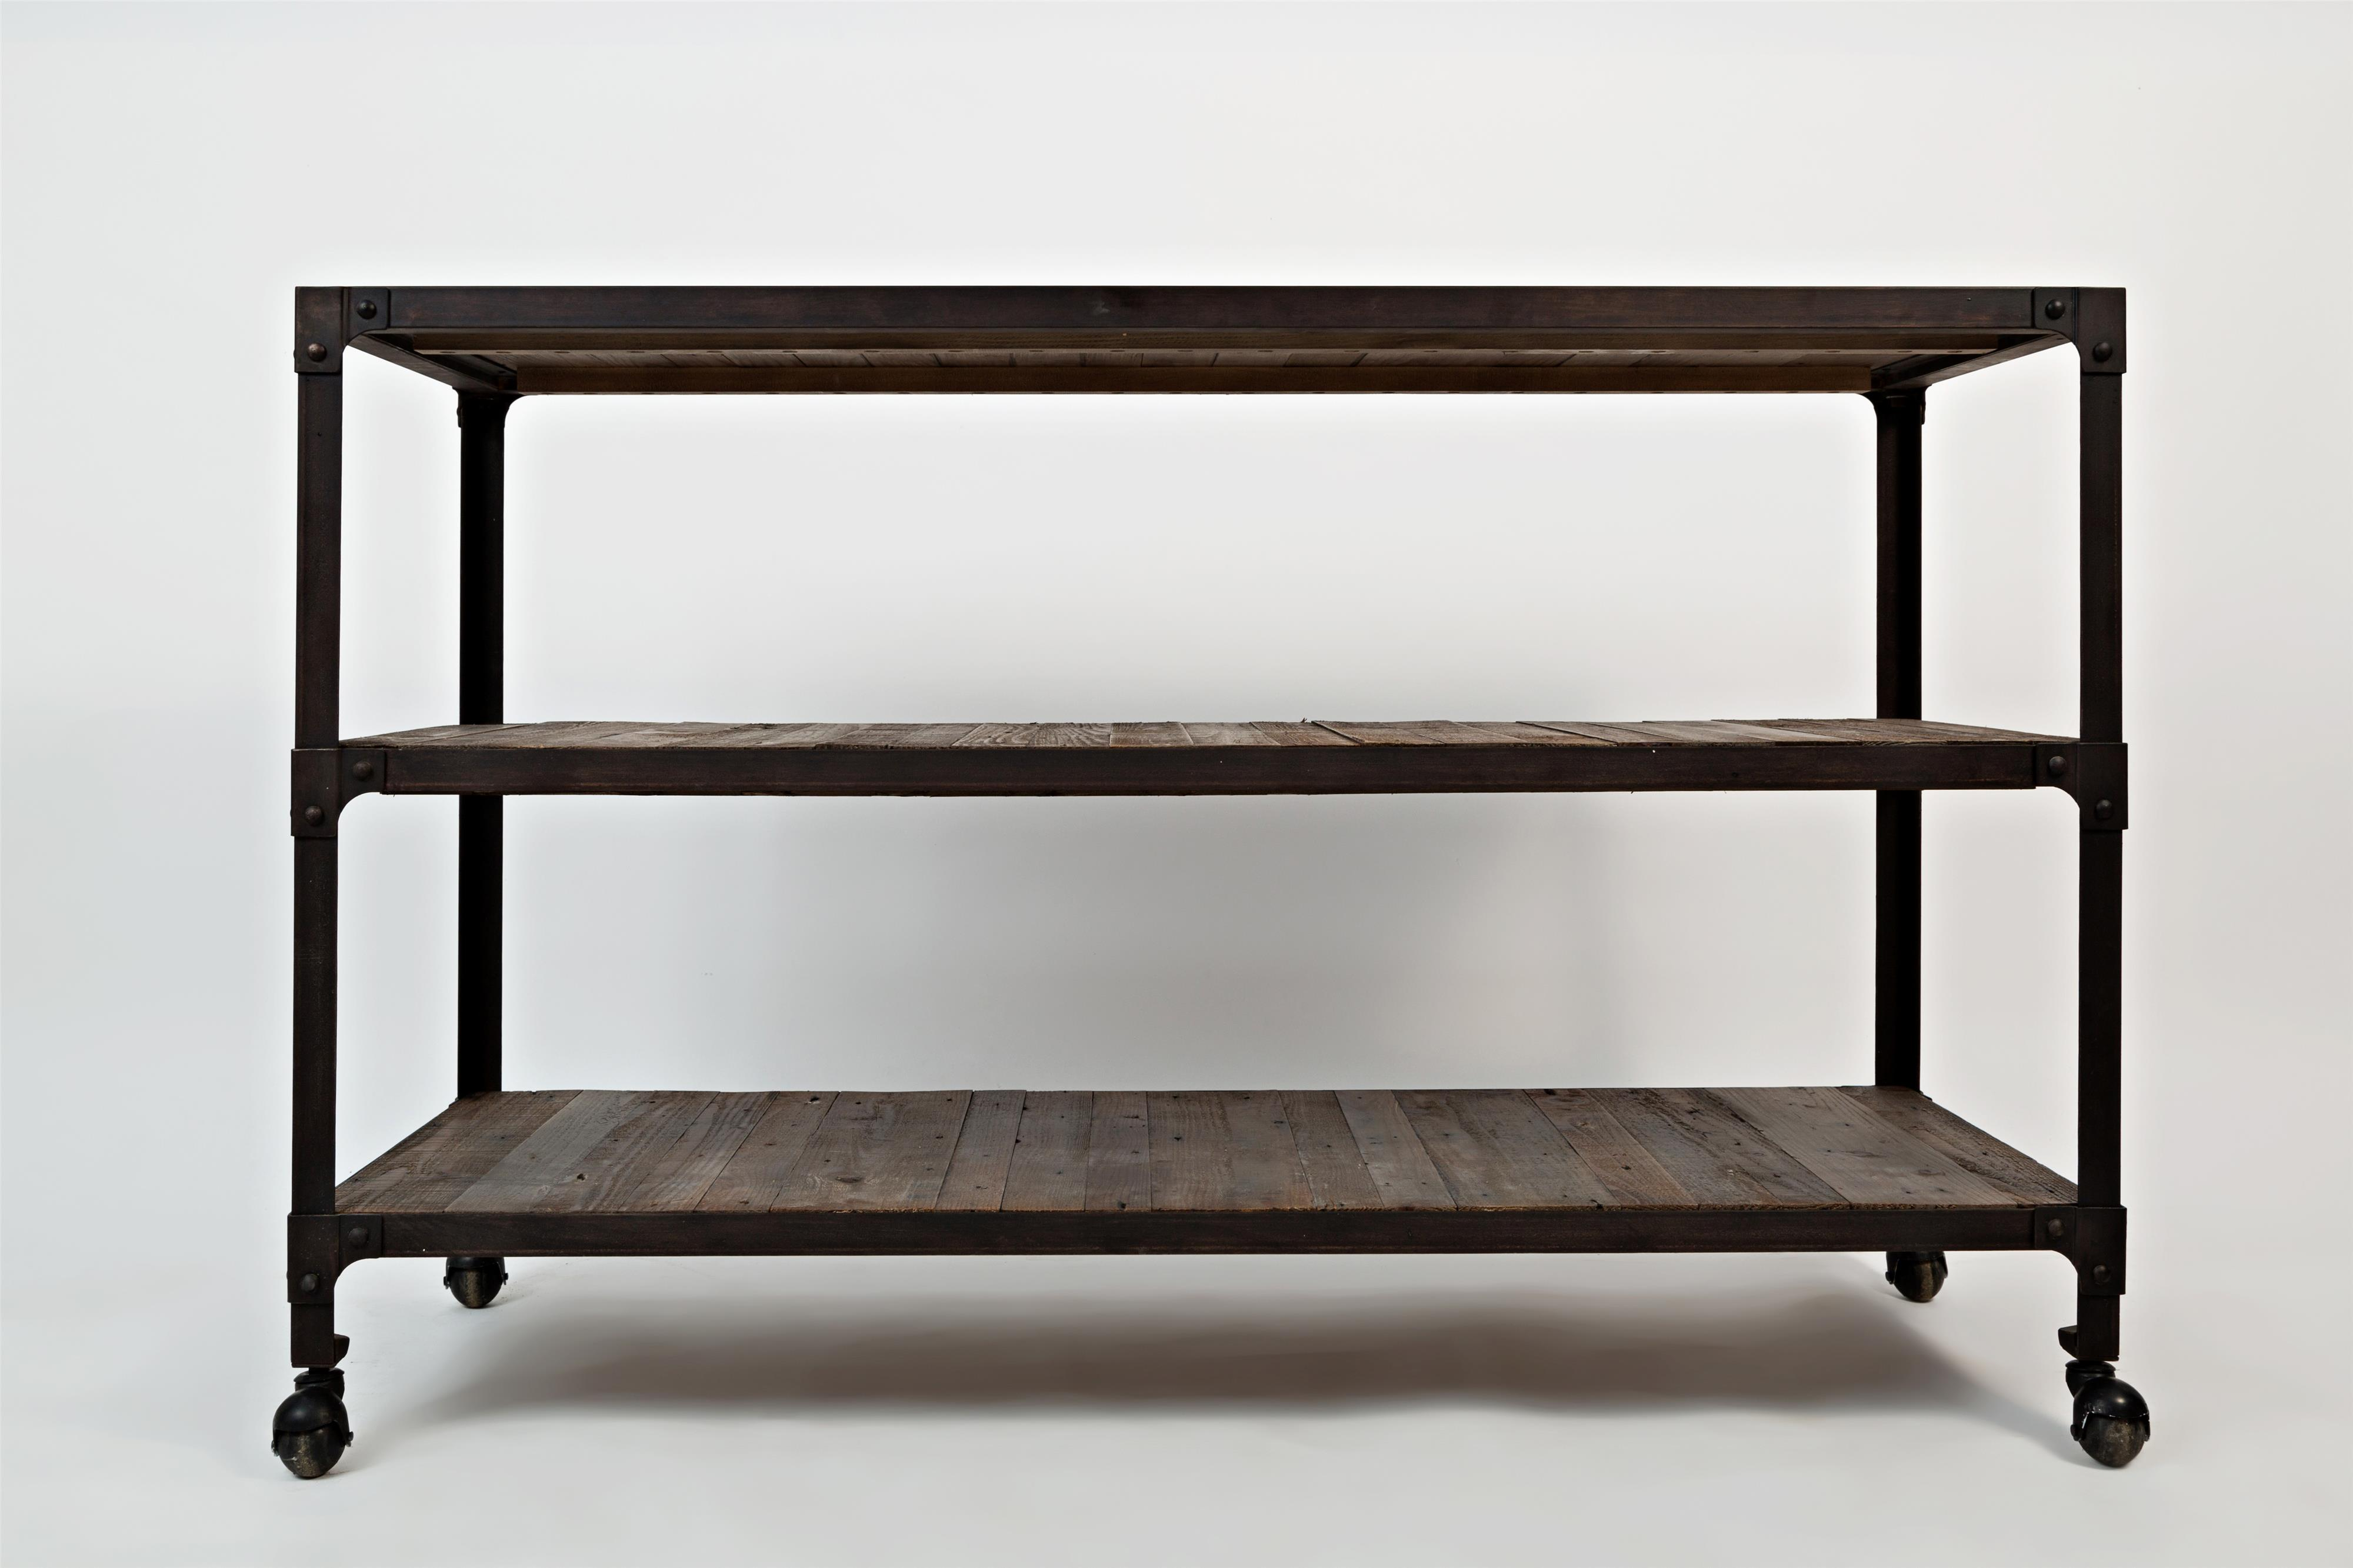 Franklin forge sofa table by jofran wolf and gardiner for Sofa table 50 inches